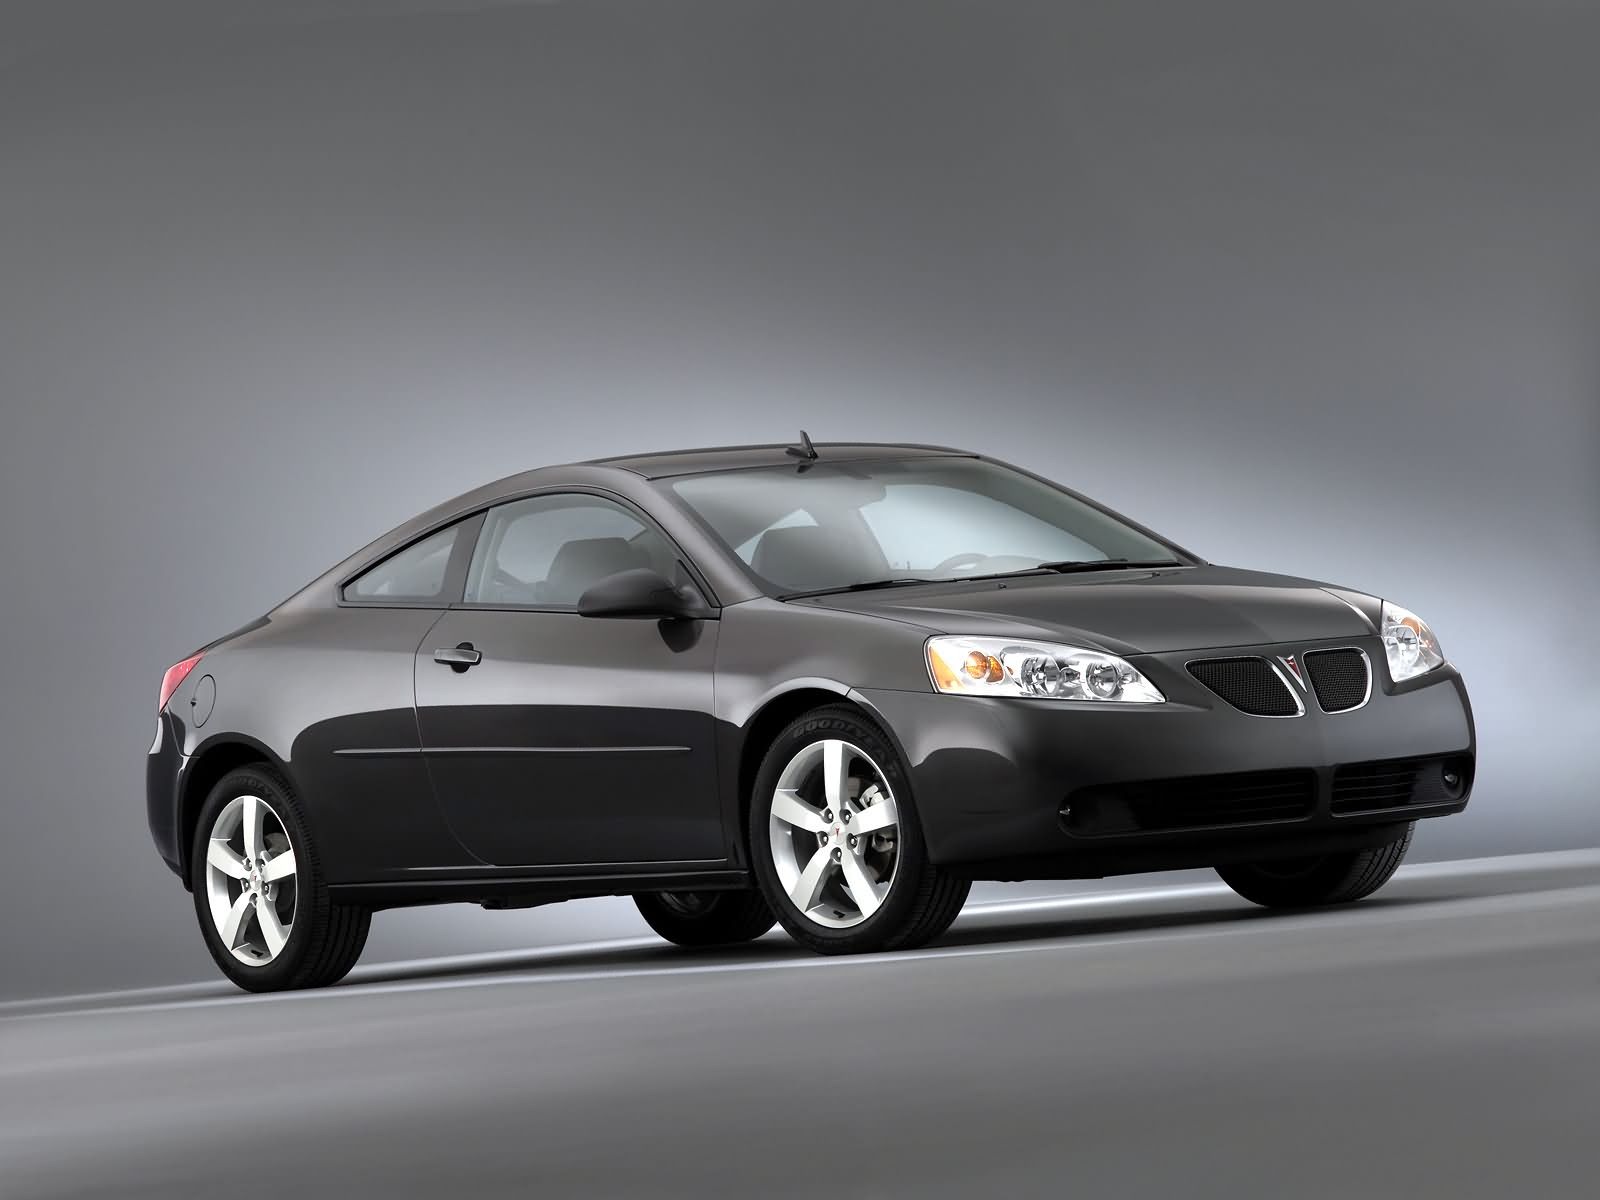 pontiac g6 gtp coupe photos photogallery with 4 pics. Black Bedroom Furniture Sets. Home Design Ideas